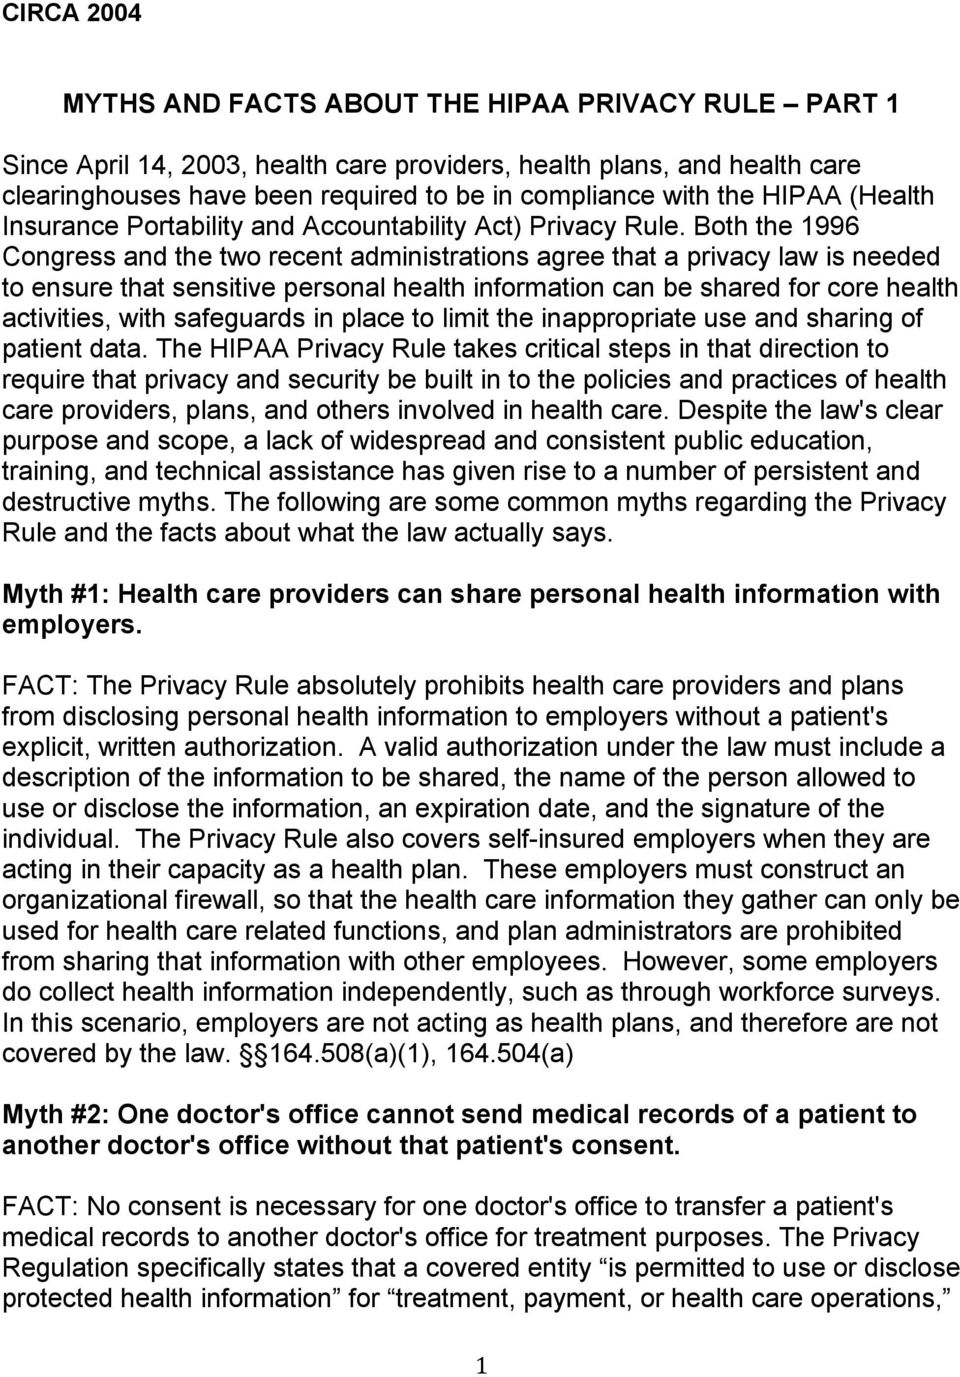 Both the 1996 Congress and the two recent administrations agree that a privacy law is needed to ensure that sensitive personal health information can be shared for core health activities, with